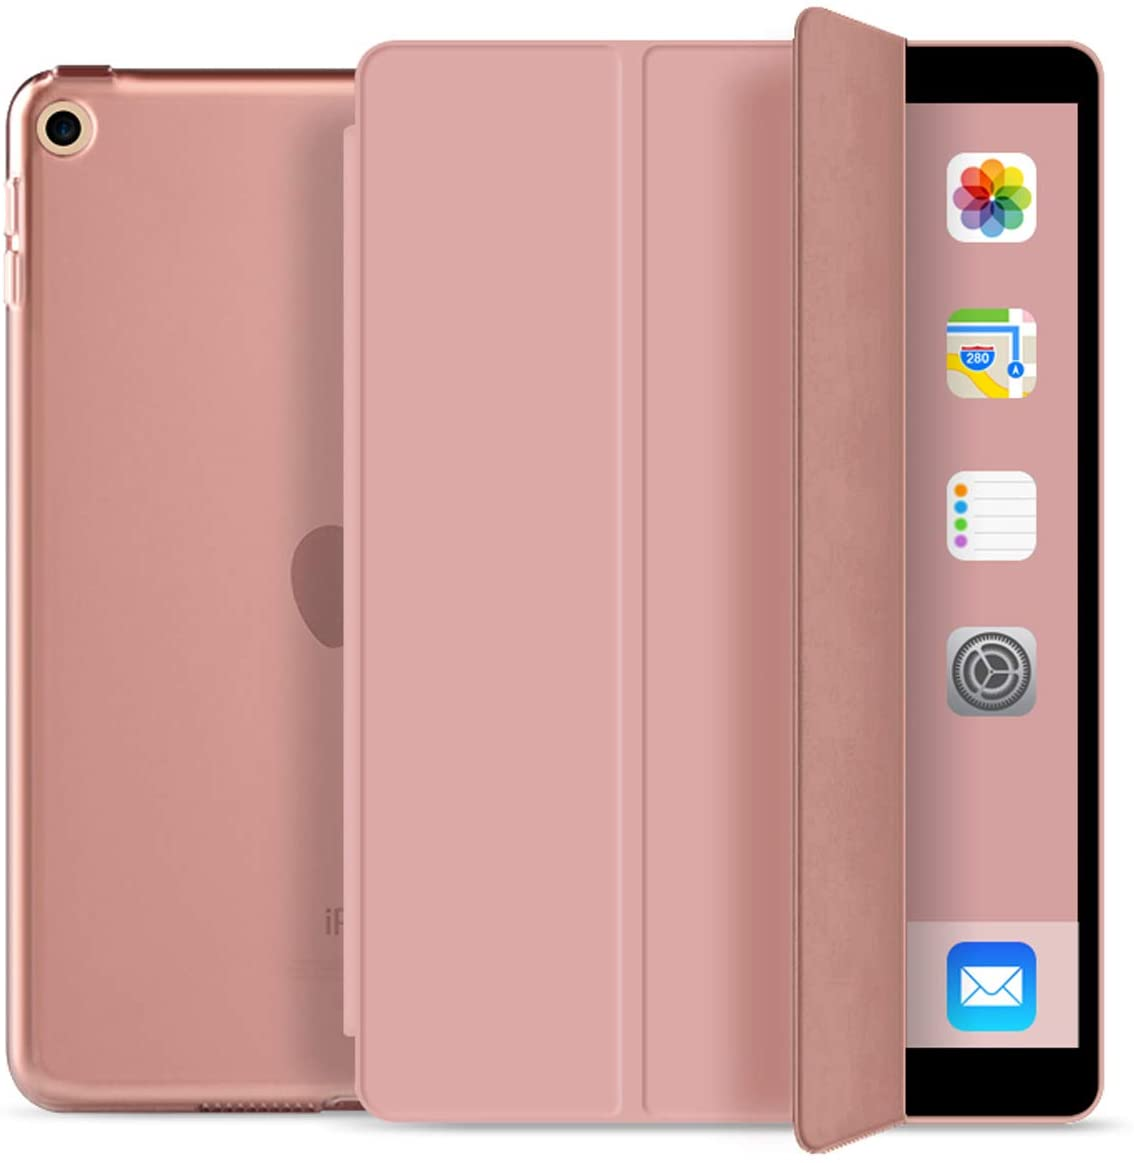 Kenke Case for iPad 9.7 Inch 2018/2017,Smart Cover with Magnetic Auto Sleep/Wake for ipad 5th/6th Generation (Rose Gold)